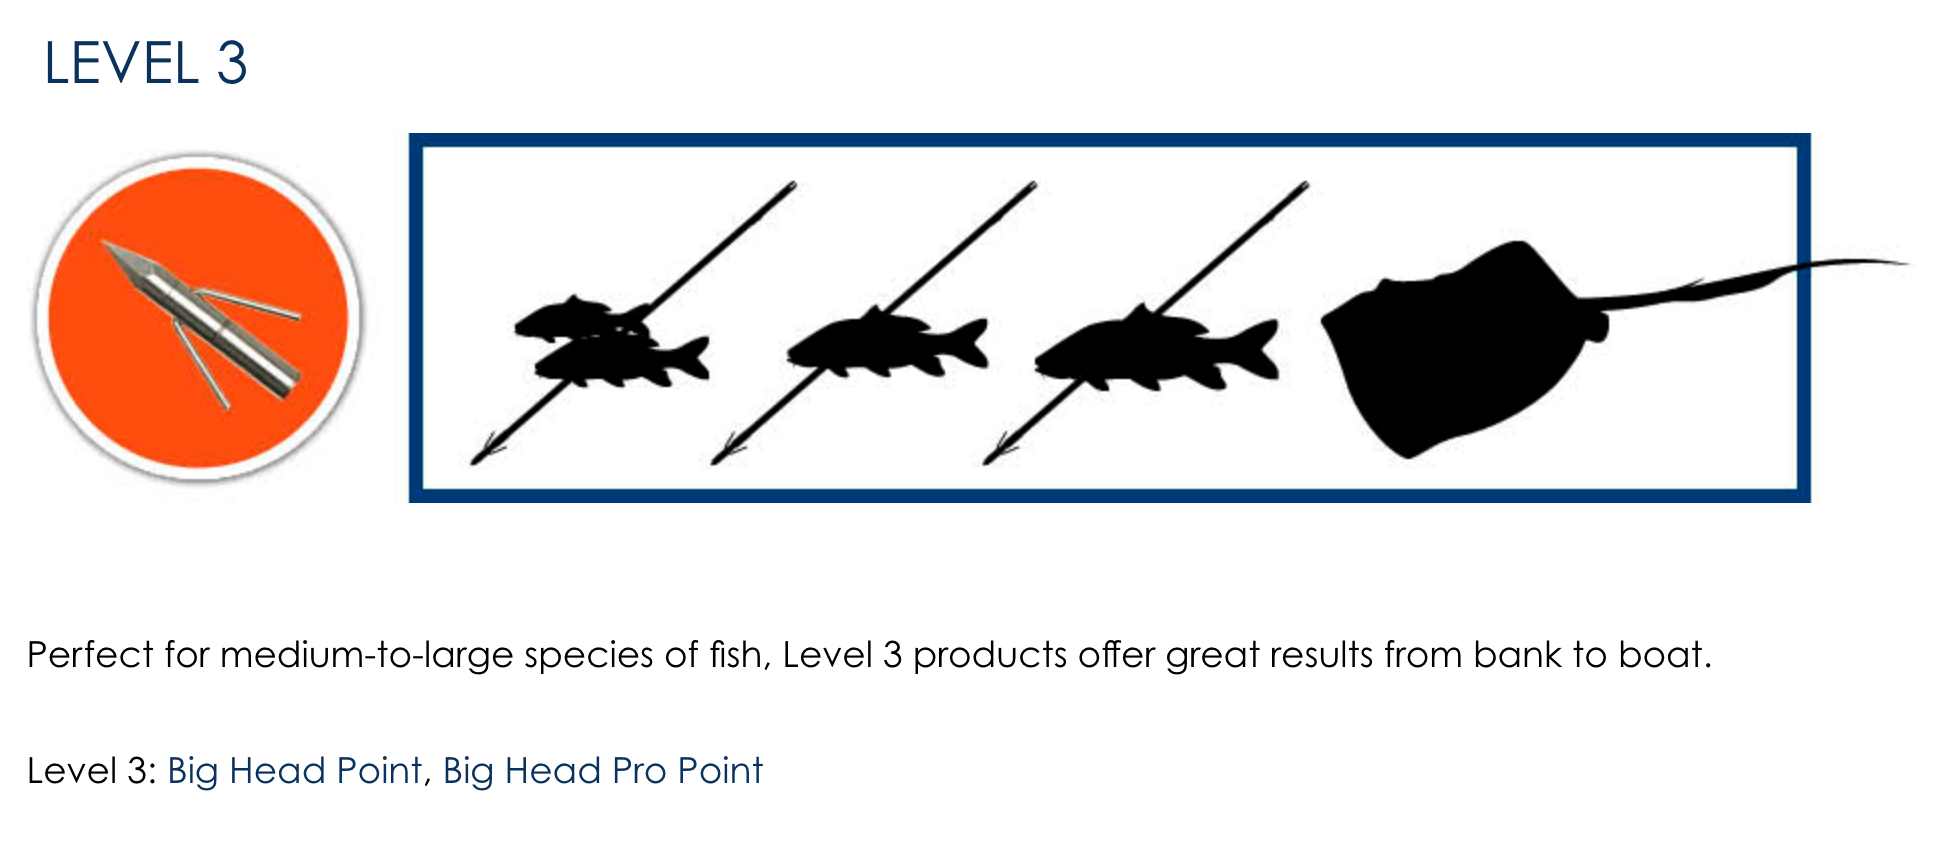 Fin-Finder Level 3 Bowfishing Point, Bowfishing Point